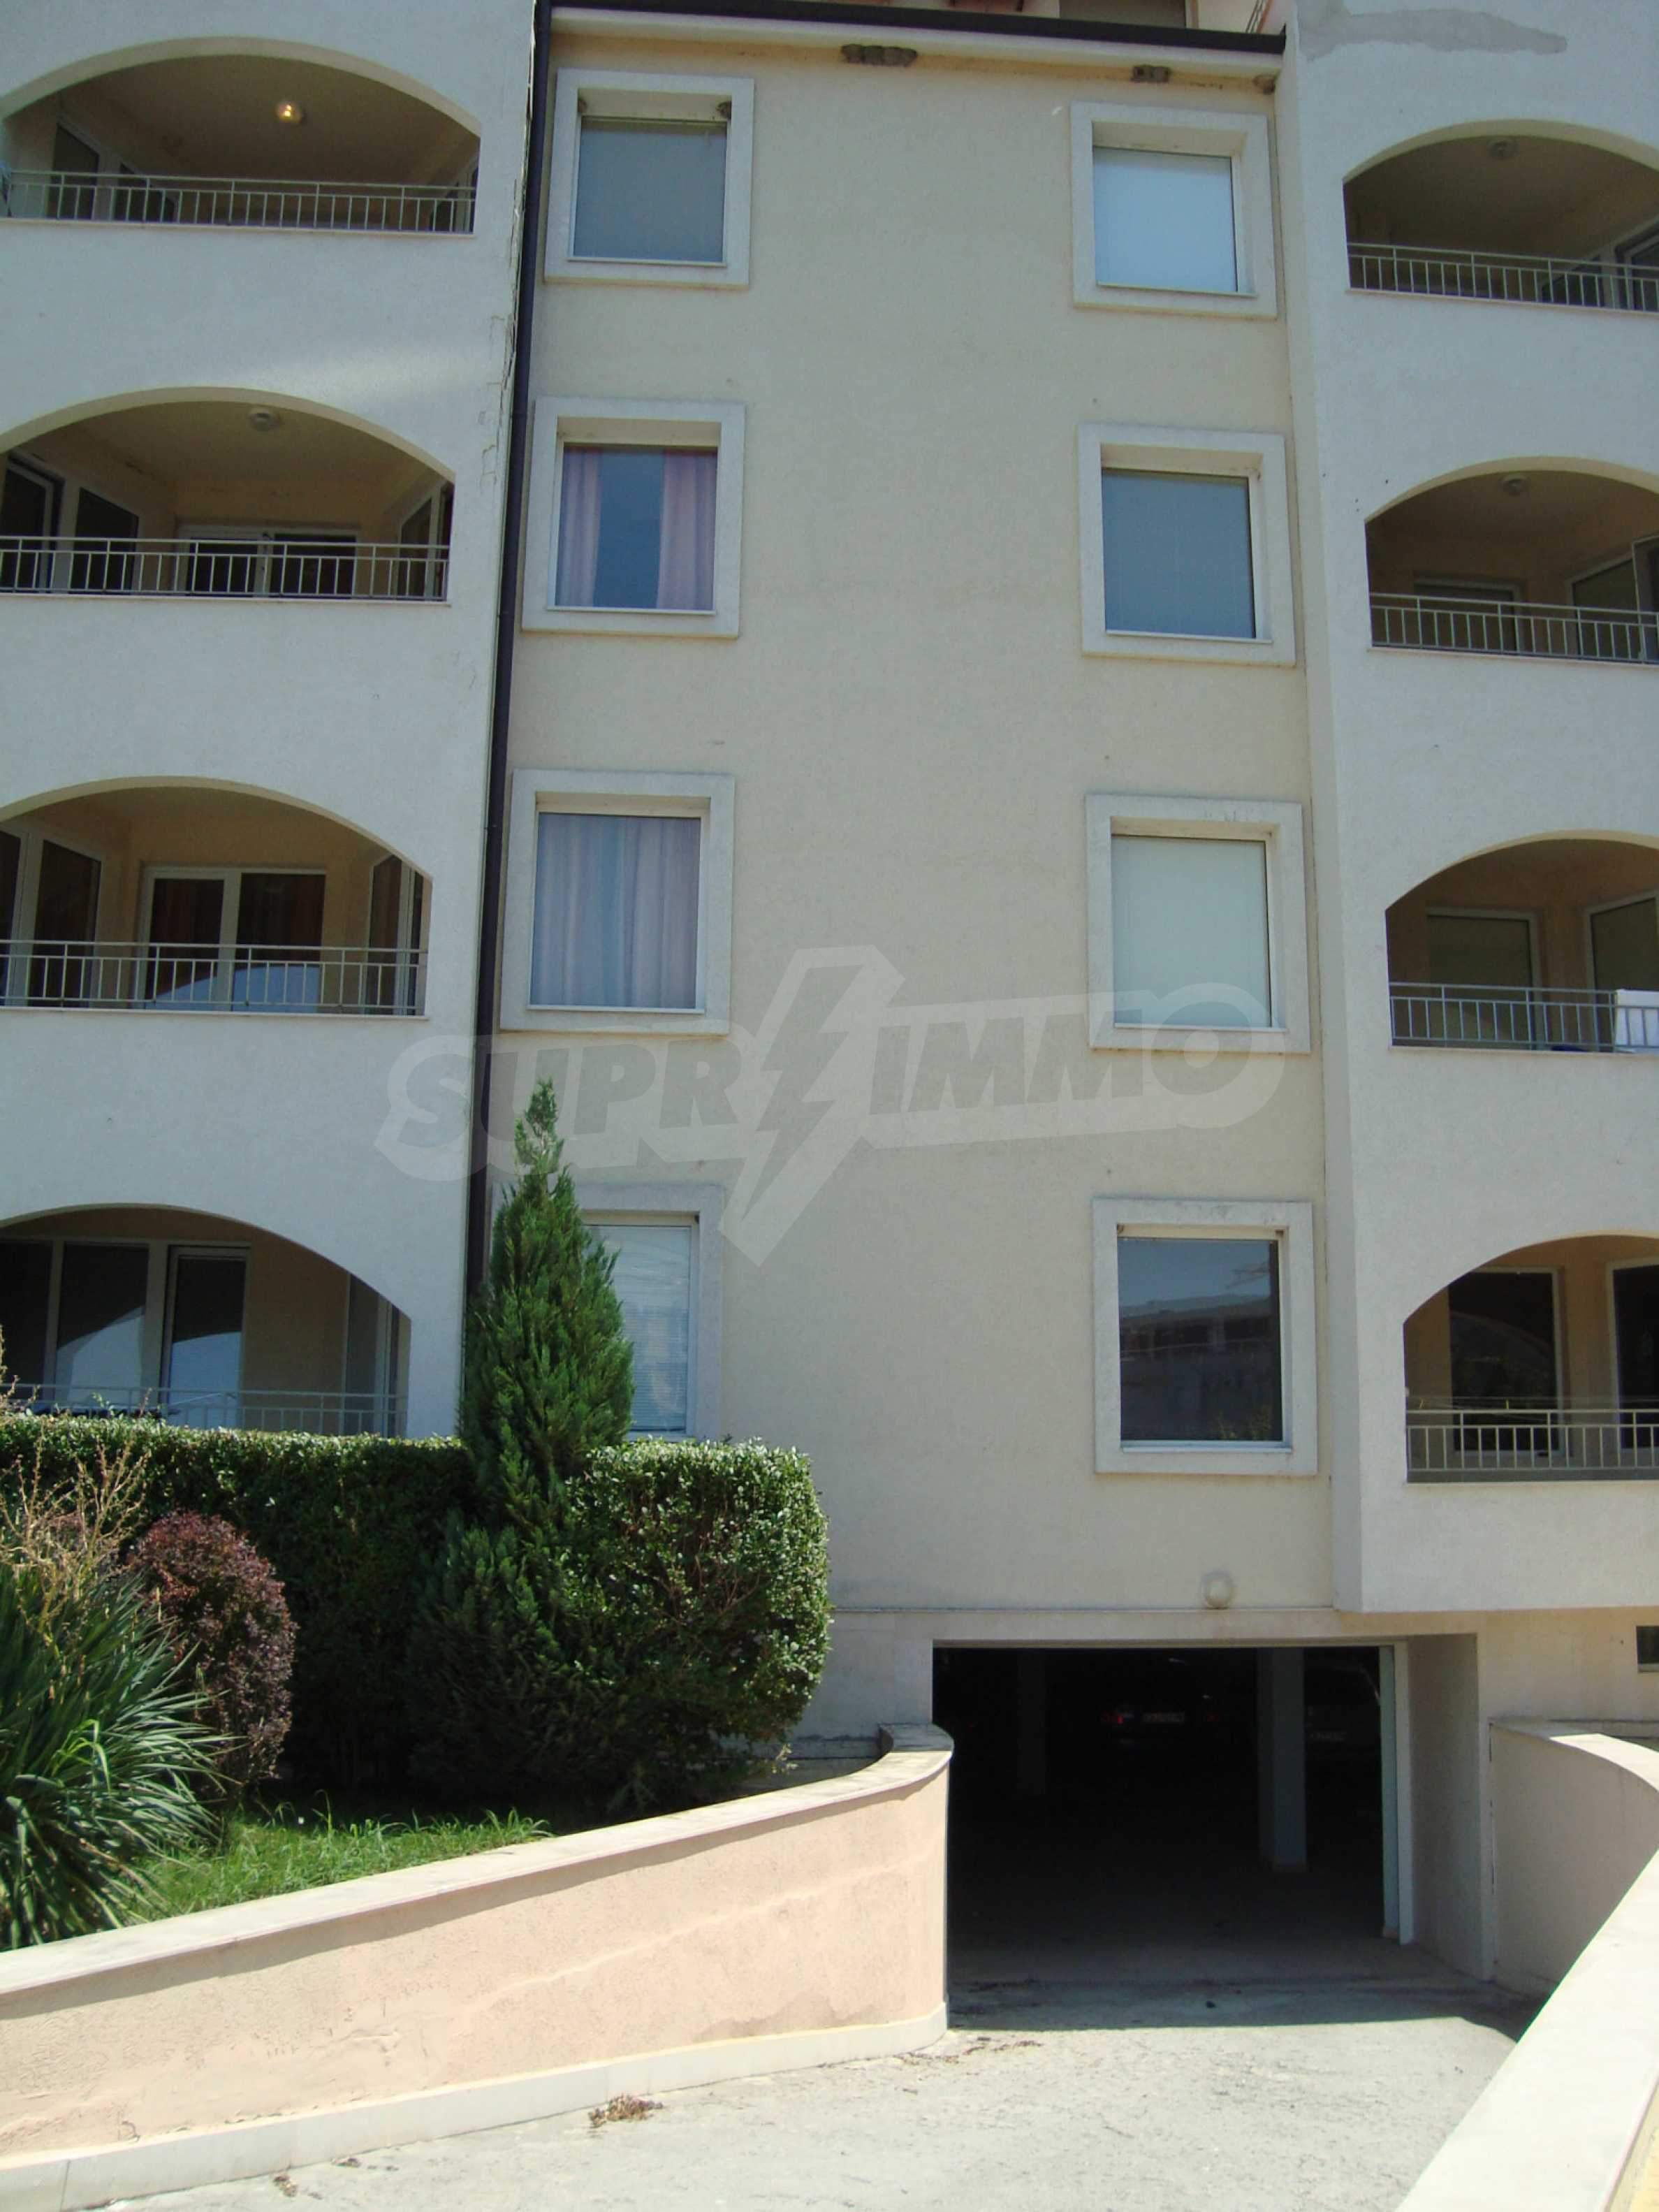 One-bedroom apartment in Prestige City 1 complex in Sunny beach 26